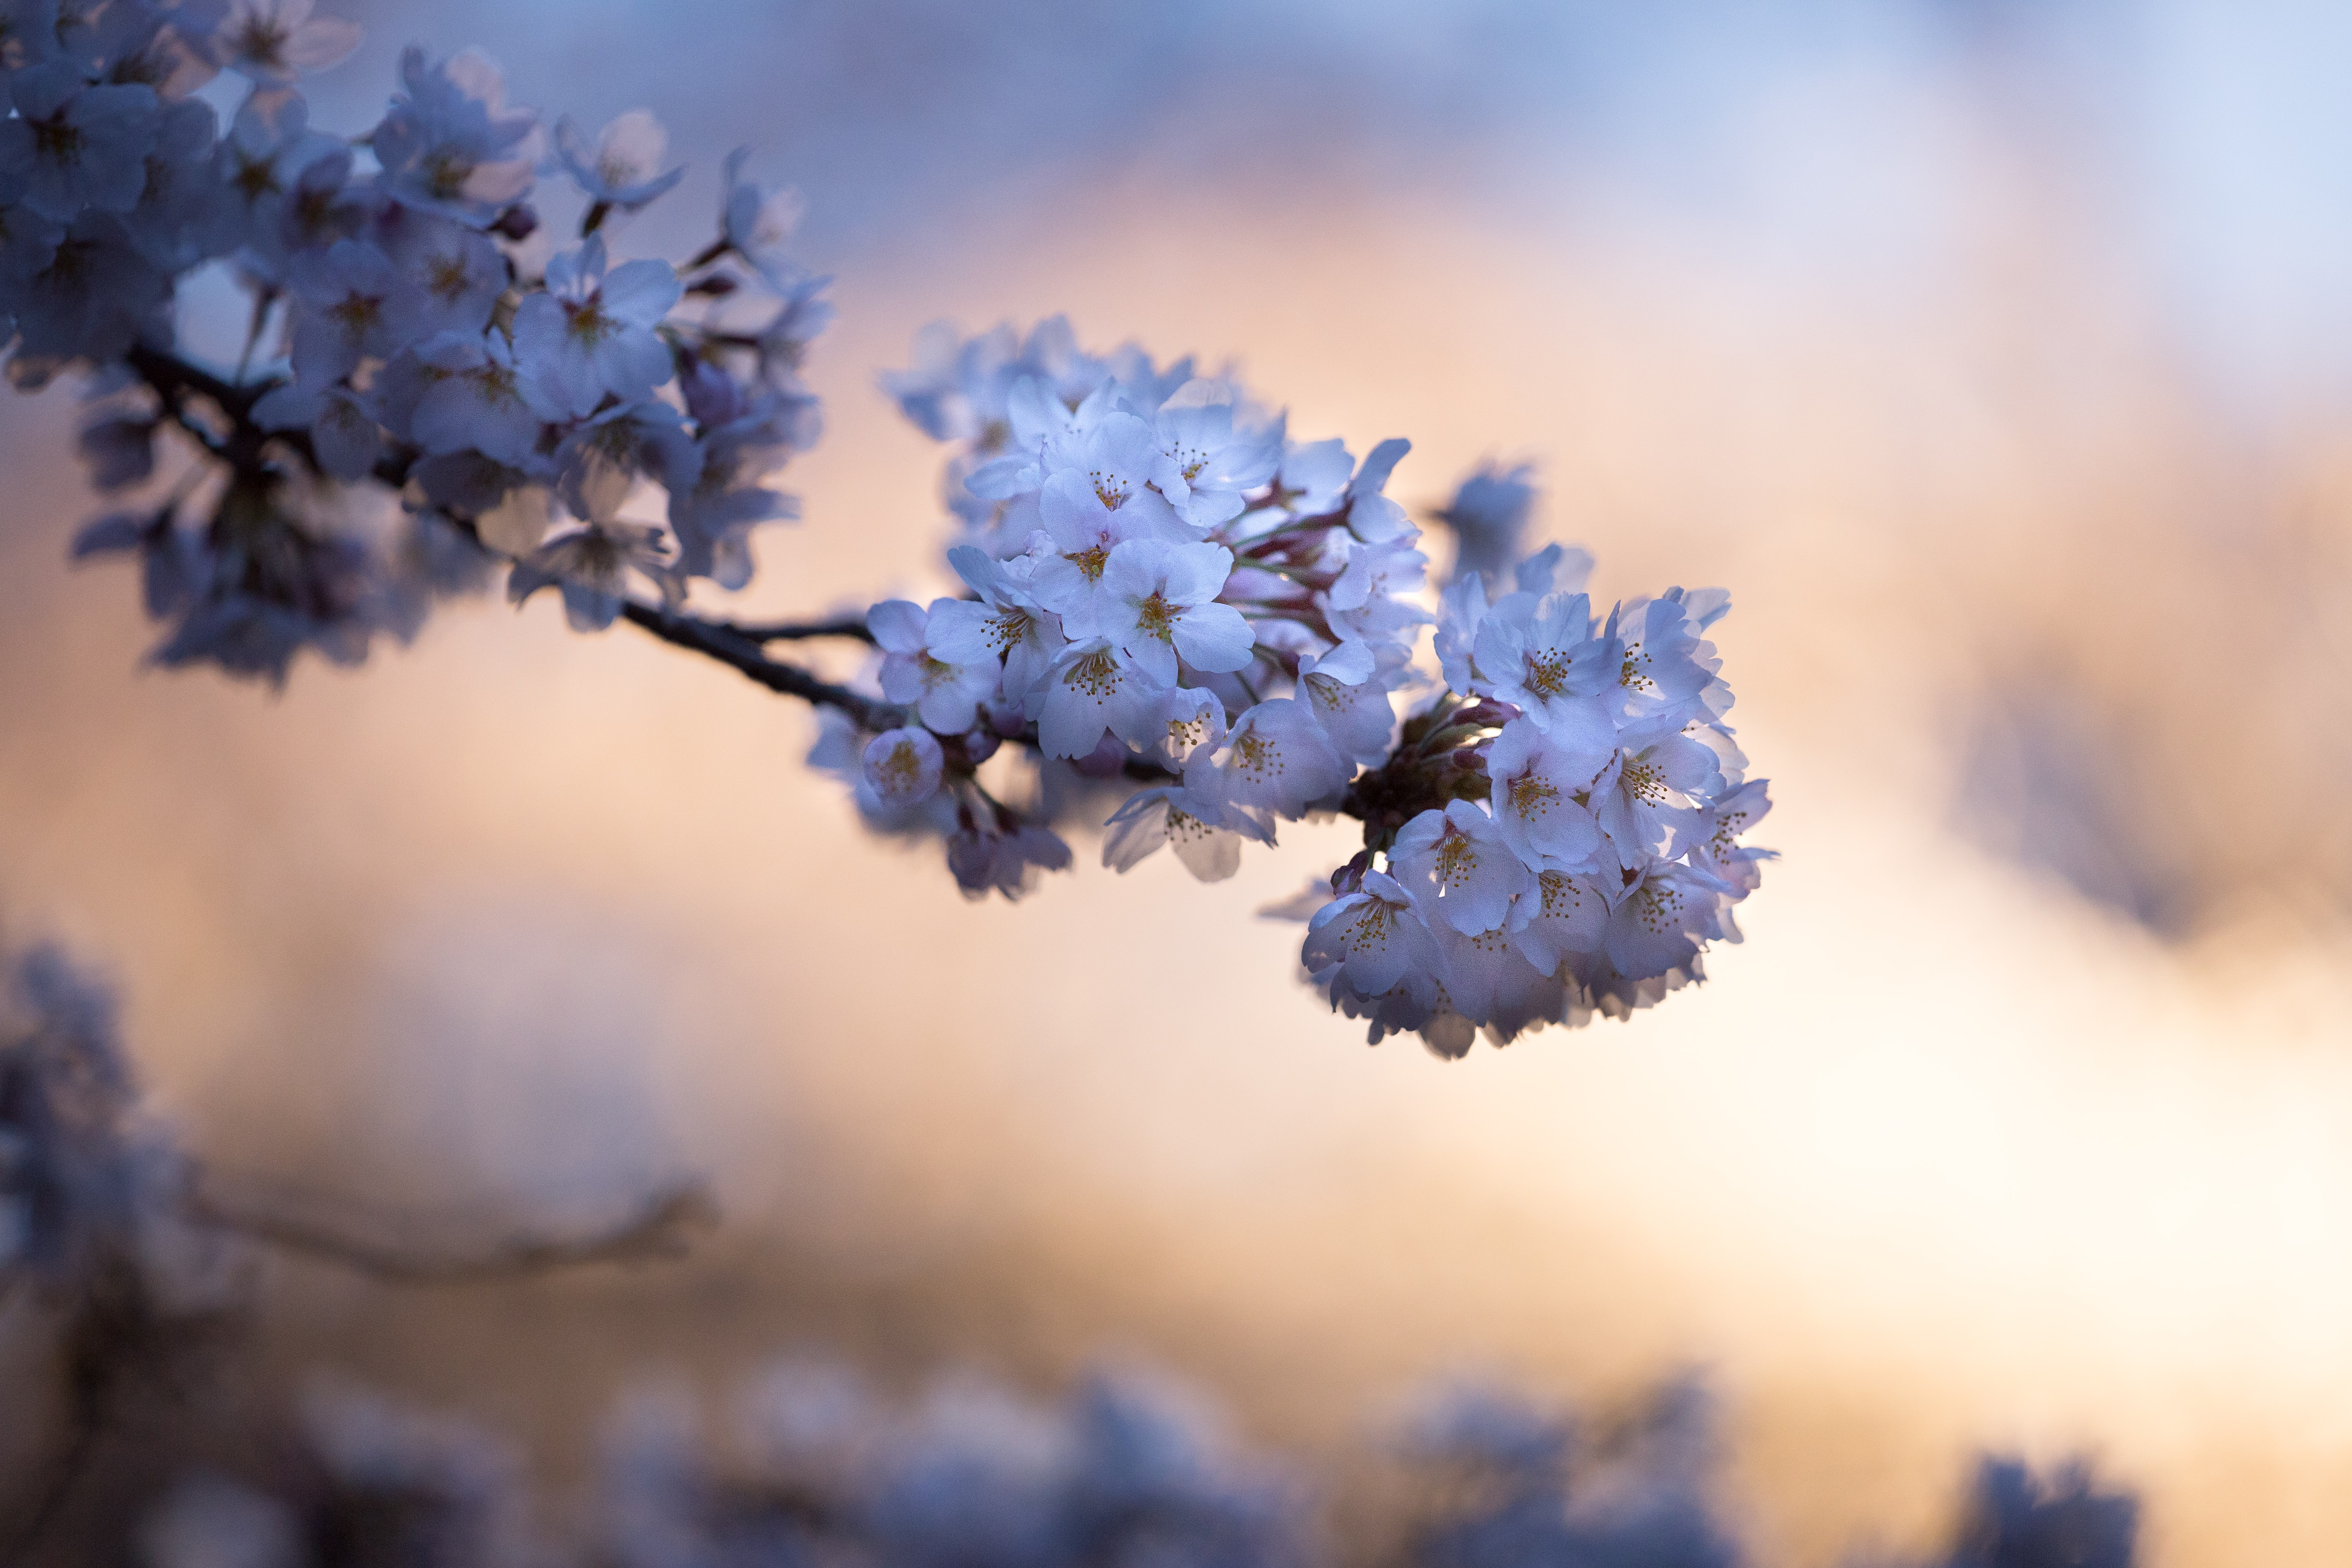 Branch with floral cherry blossom in bloom in Spring